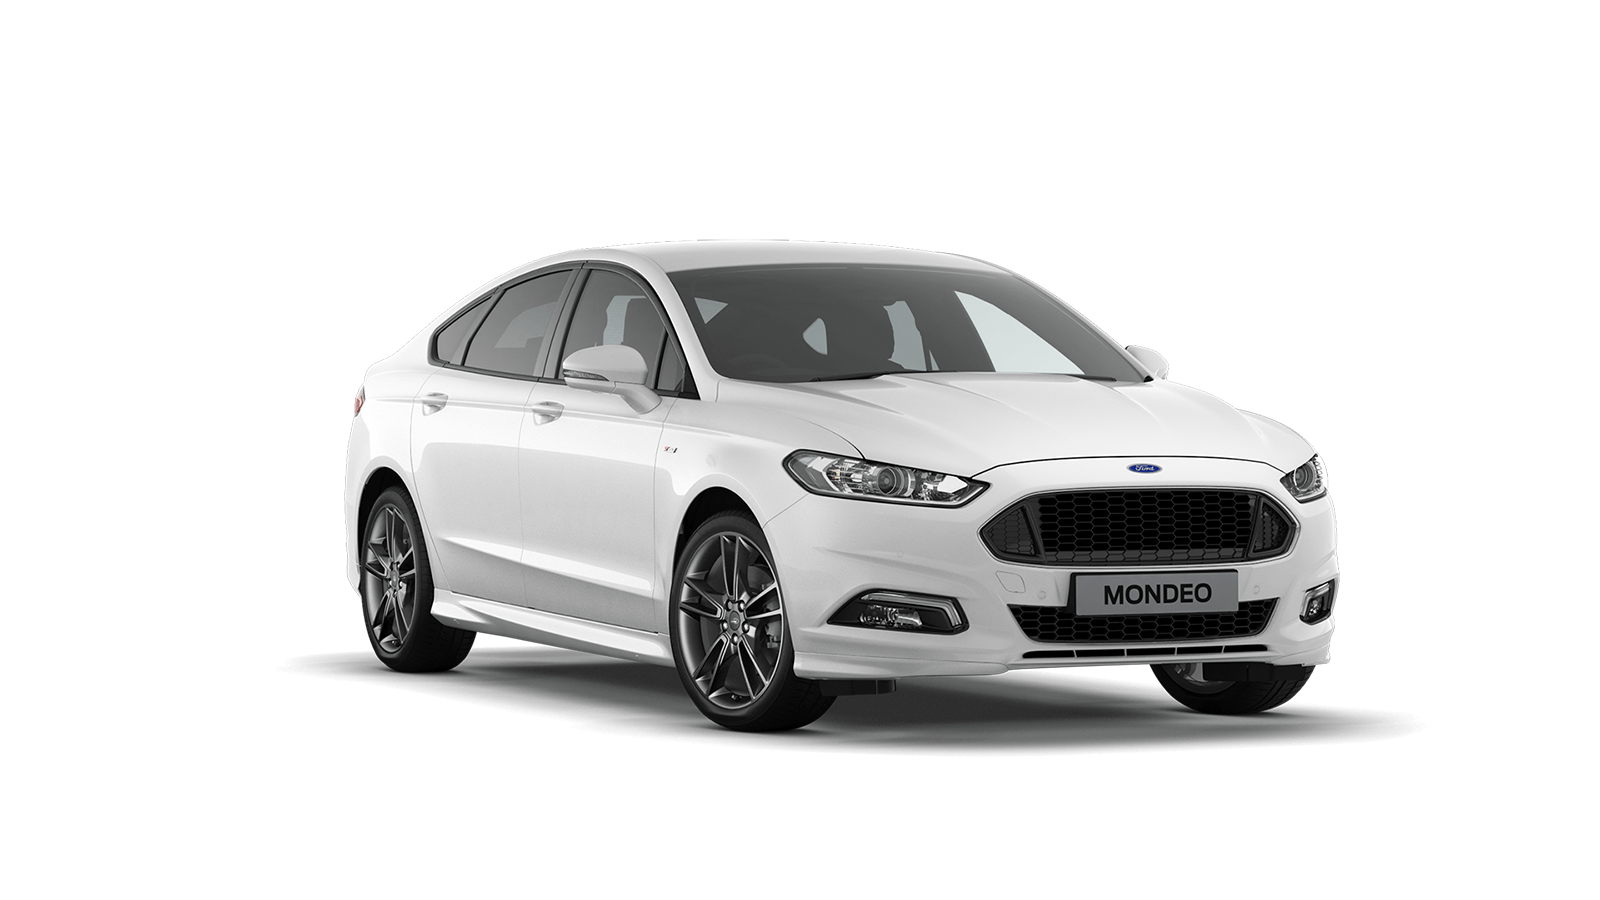 MONDEO ST-Line Edition 5 Door in Frozen White